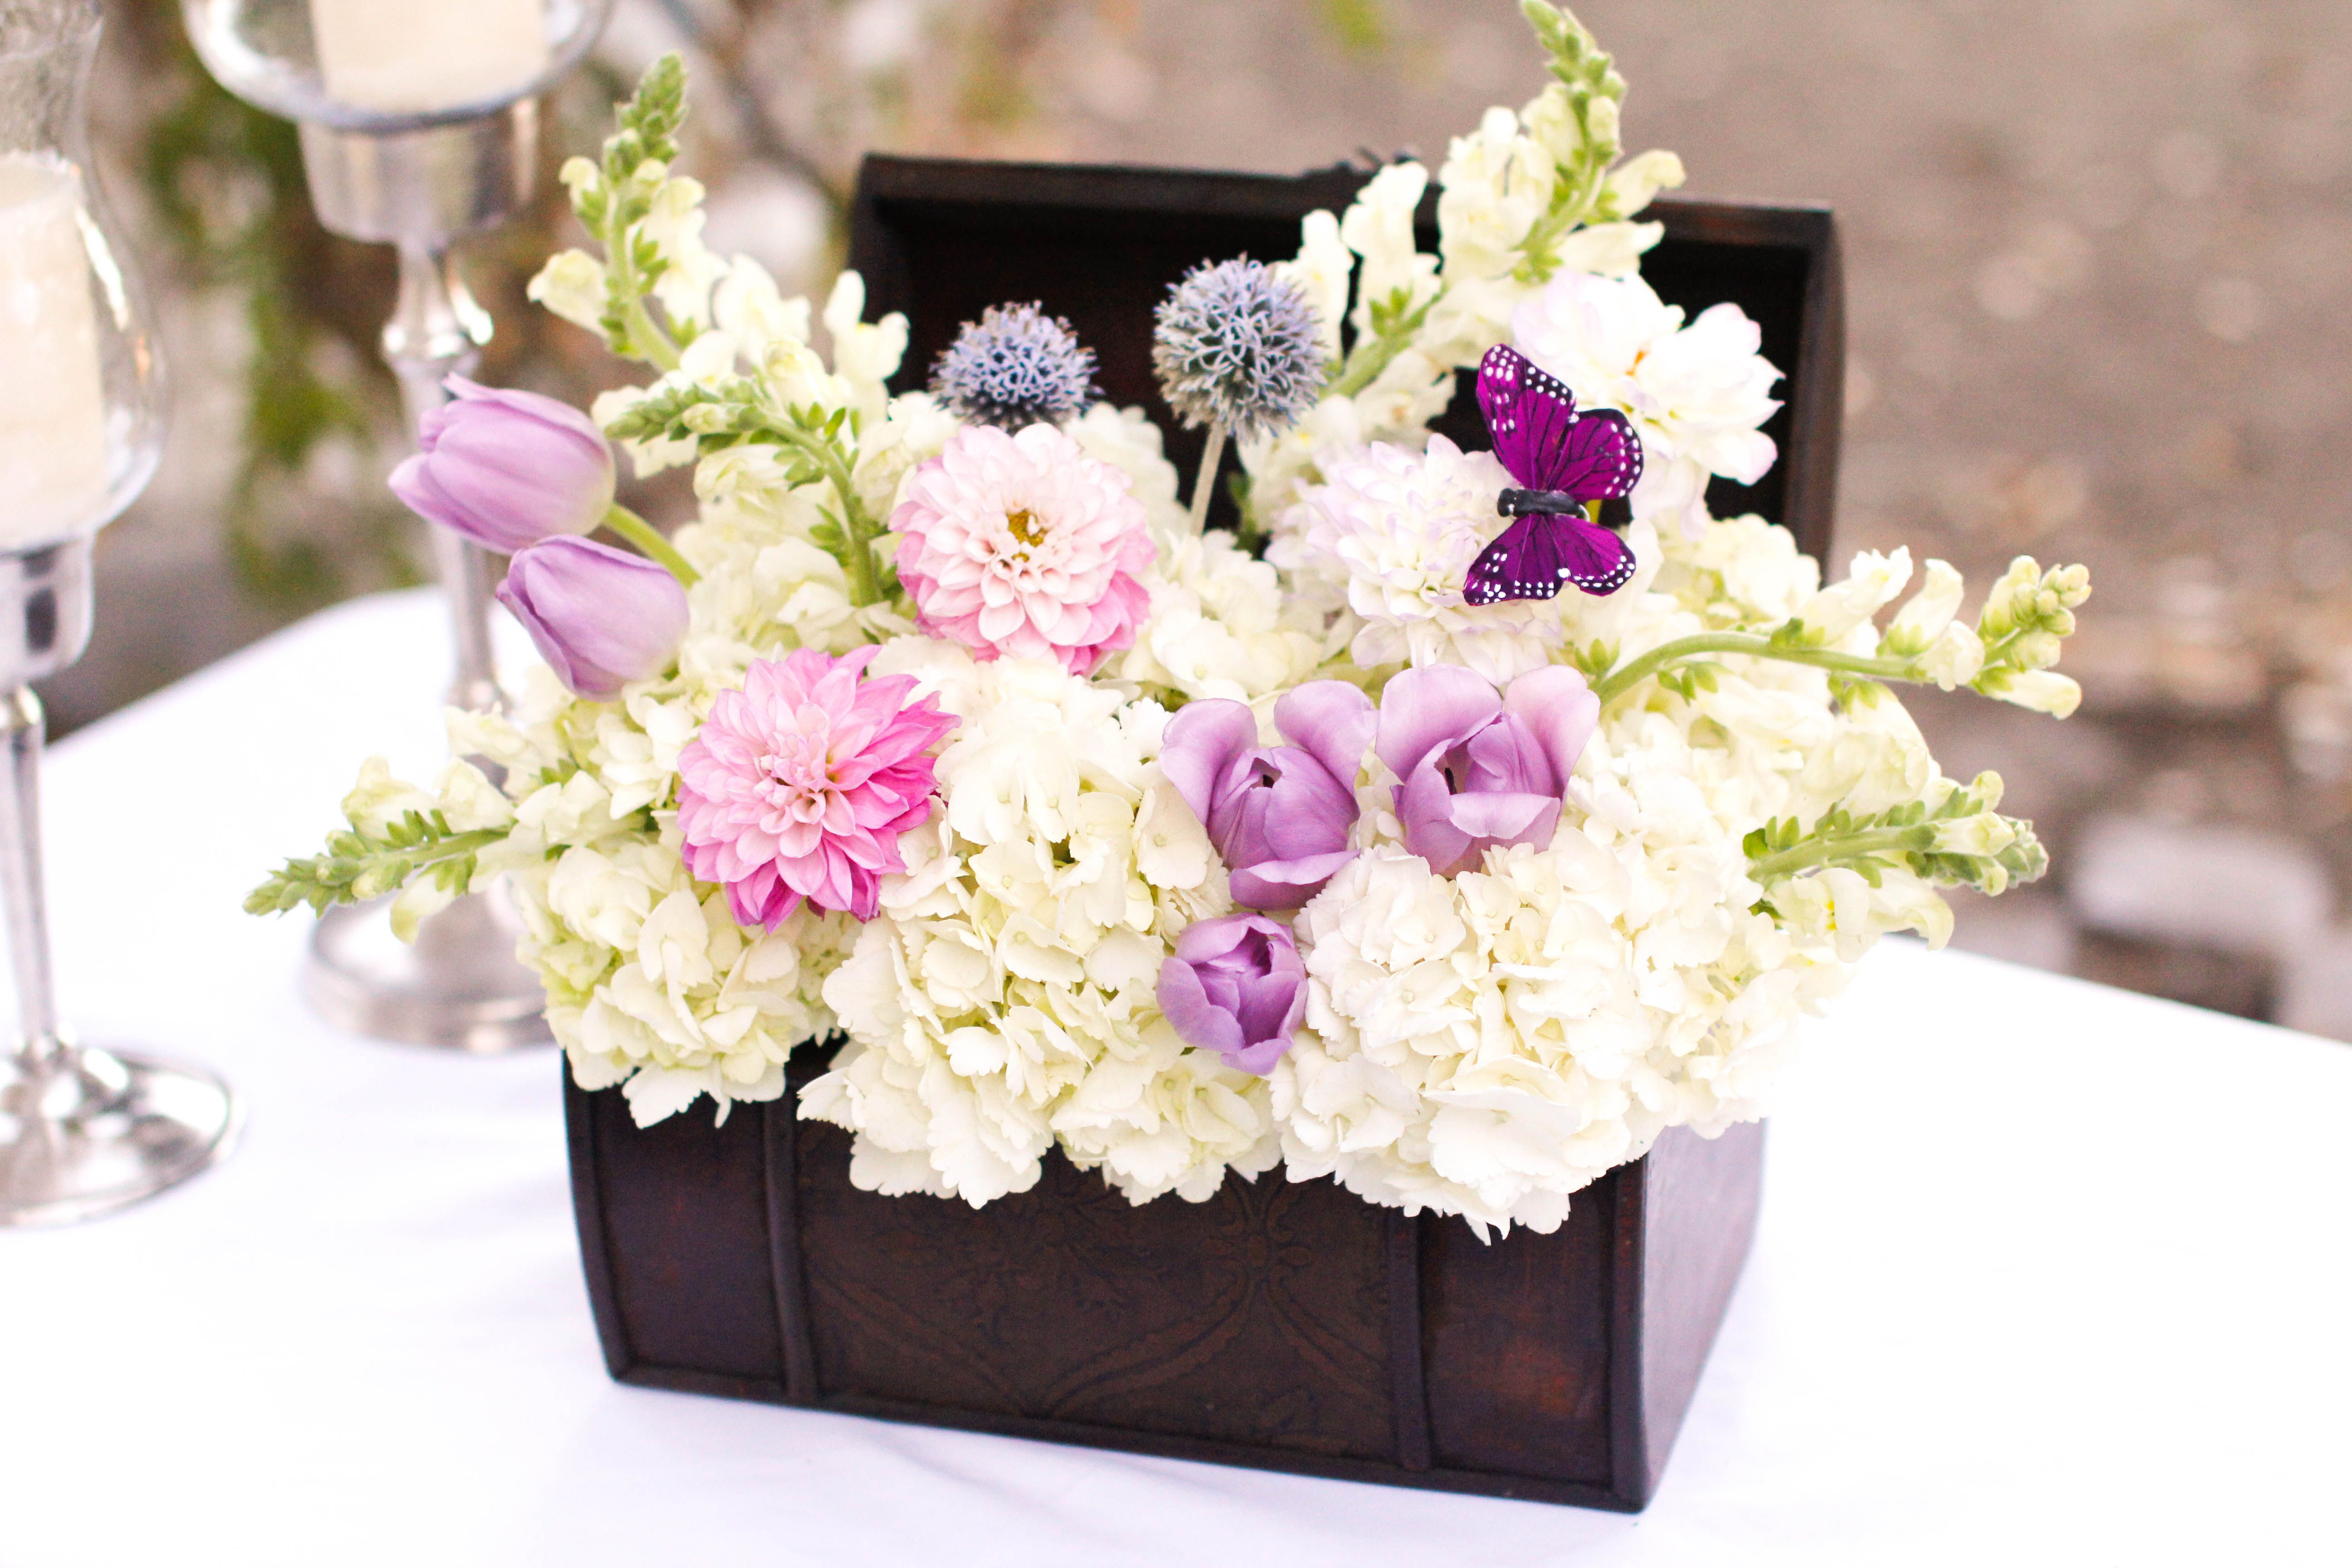 I have always loved boxes especially gift boxes during the holiday especially gift boxes during the holiday season it gives me a sense of happy surprises and good things to come nothing is better than beautiful flowers izmirmasajfo